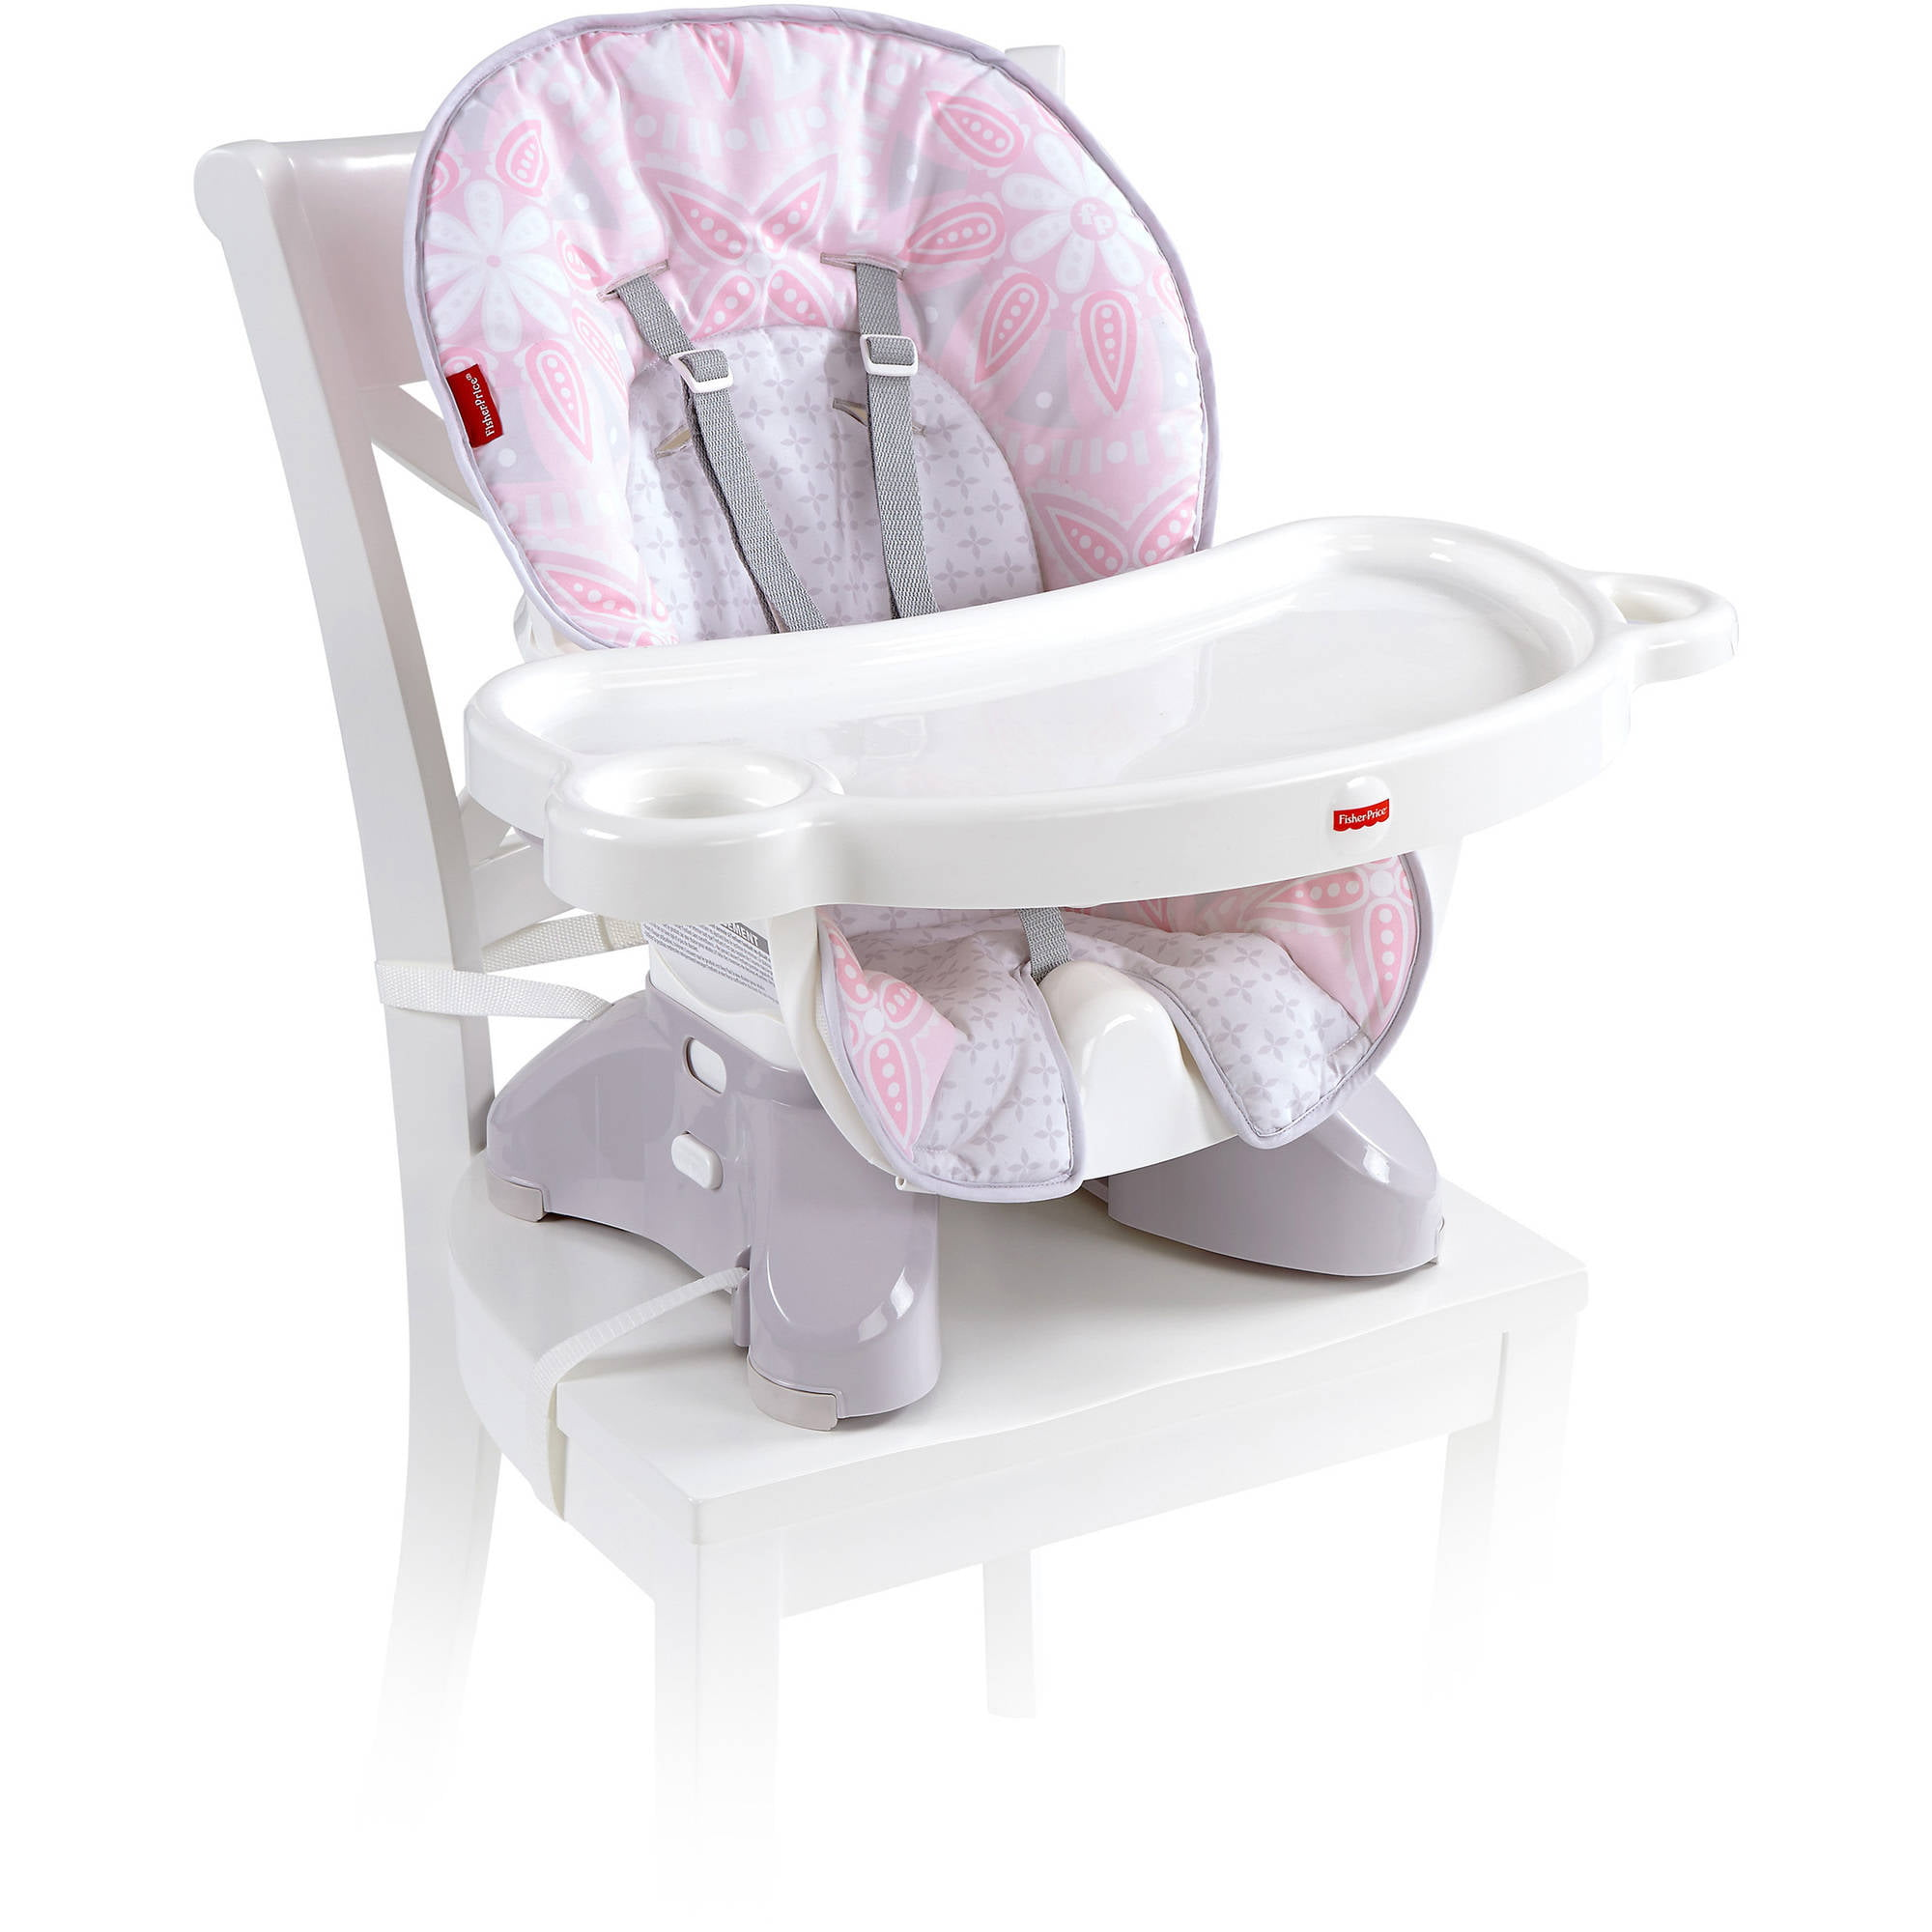 Fisher-Price SpaceSaver High Chair - Walmart.com